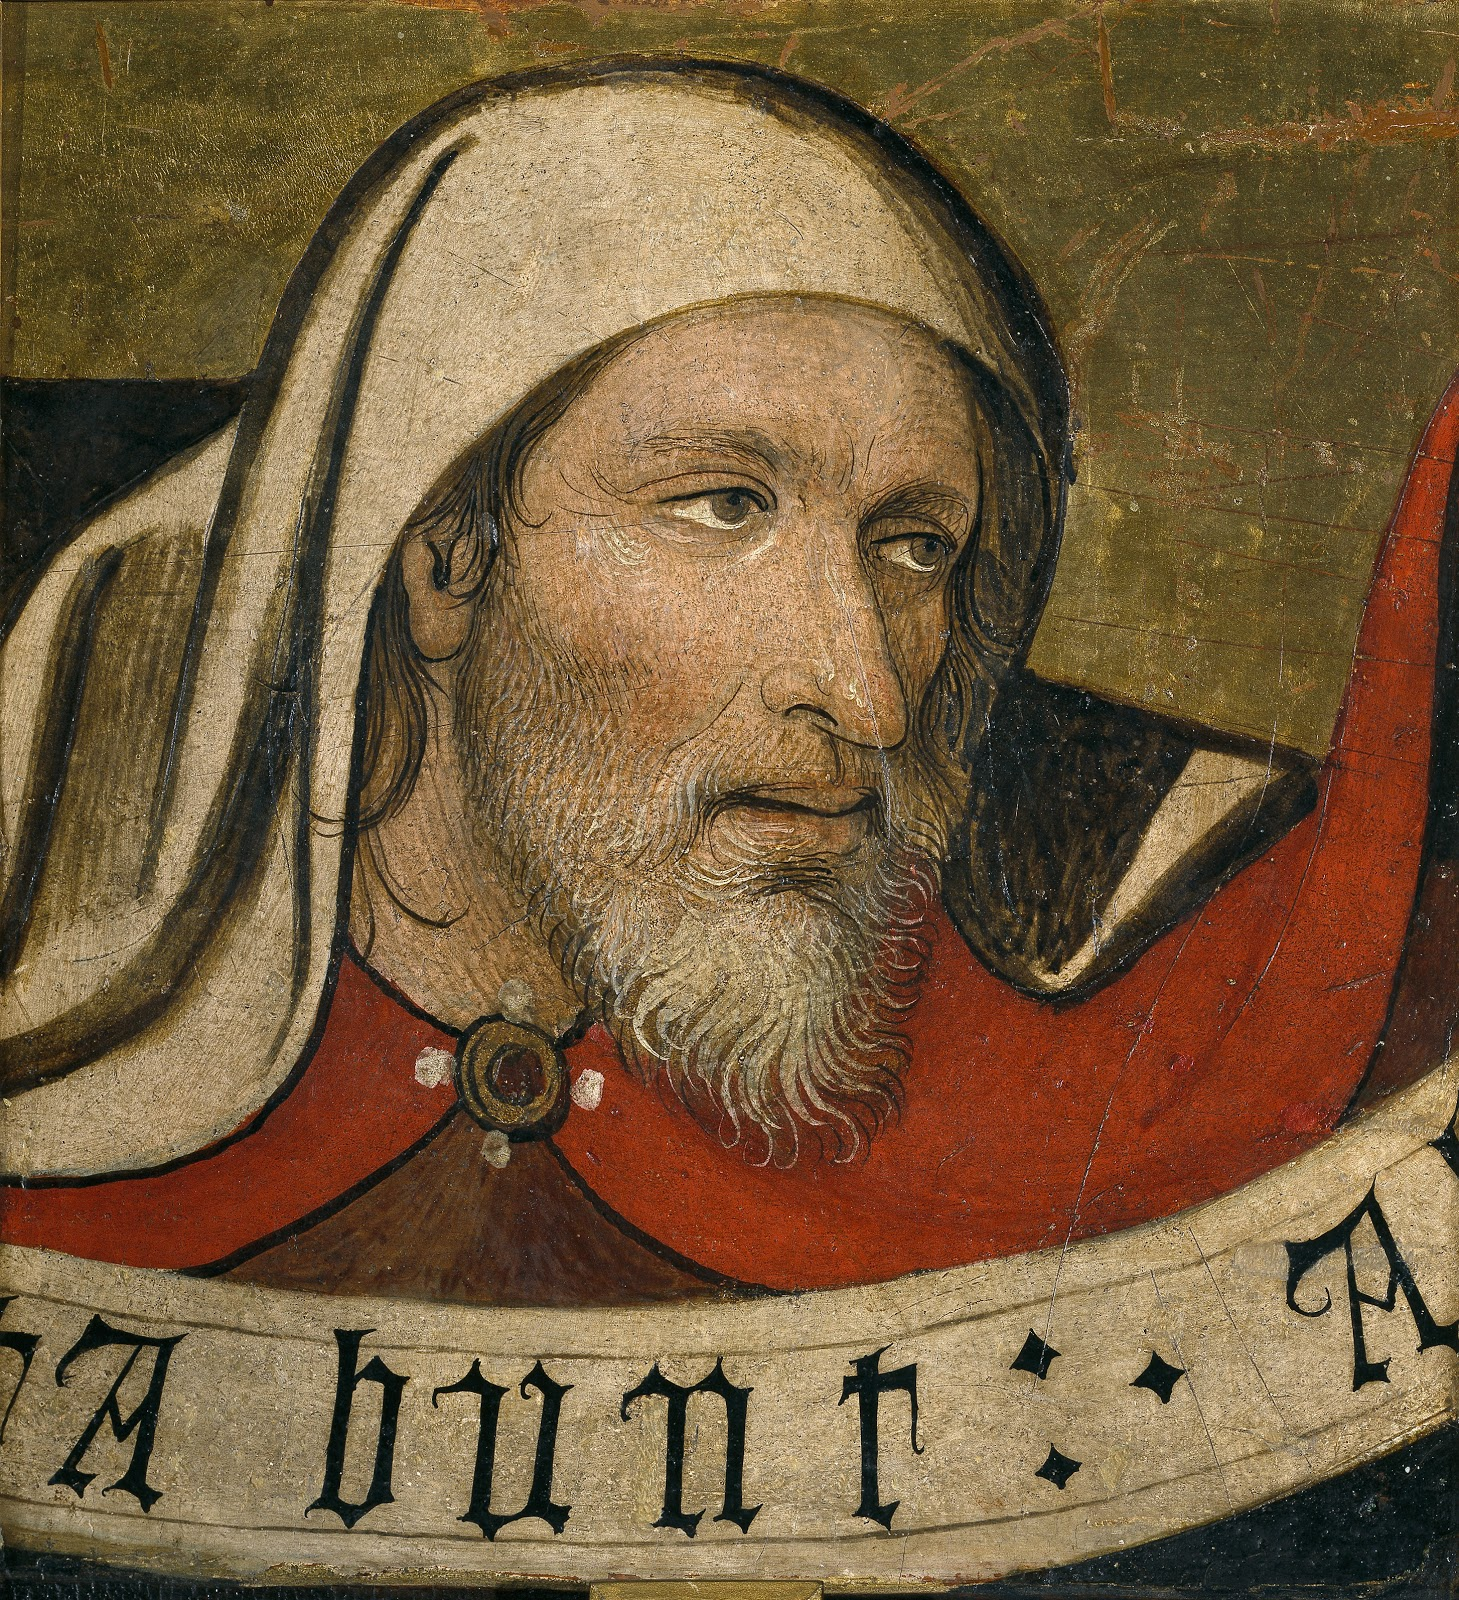 Jaume Huguet  - An Early Renaissance Painter